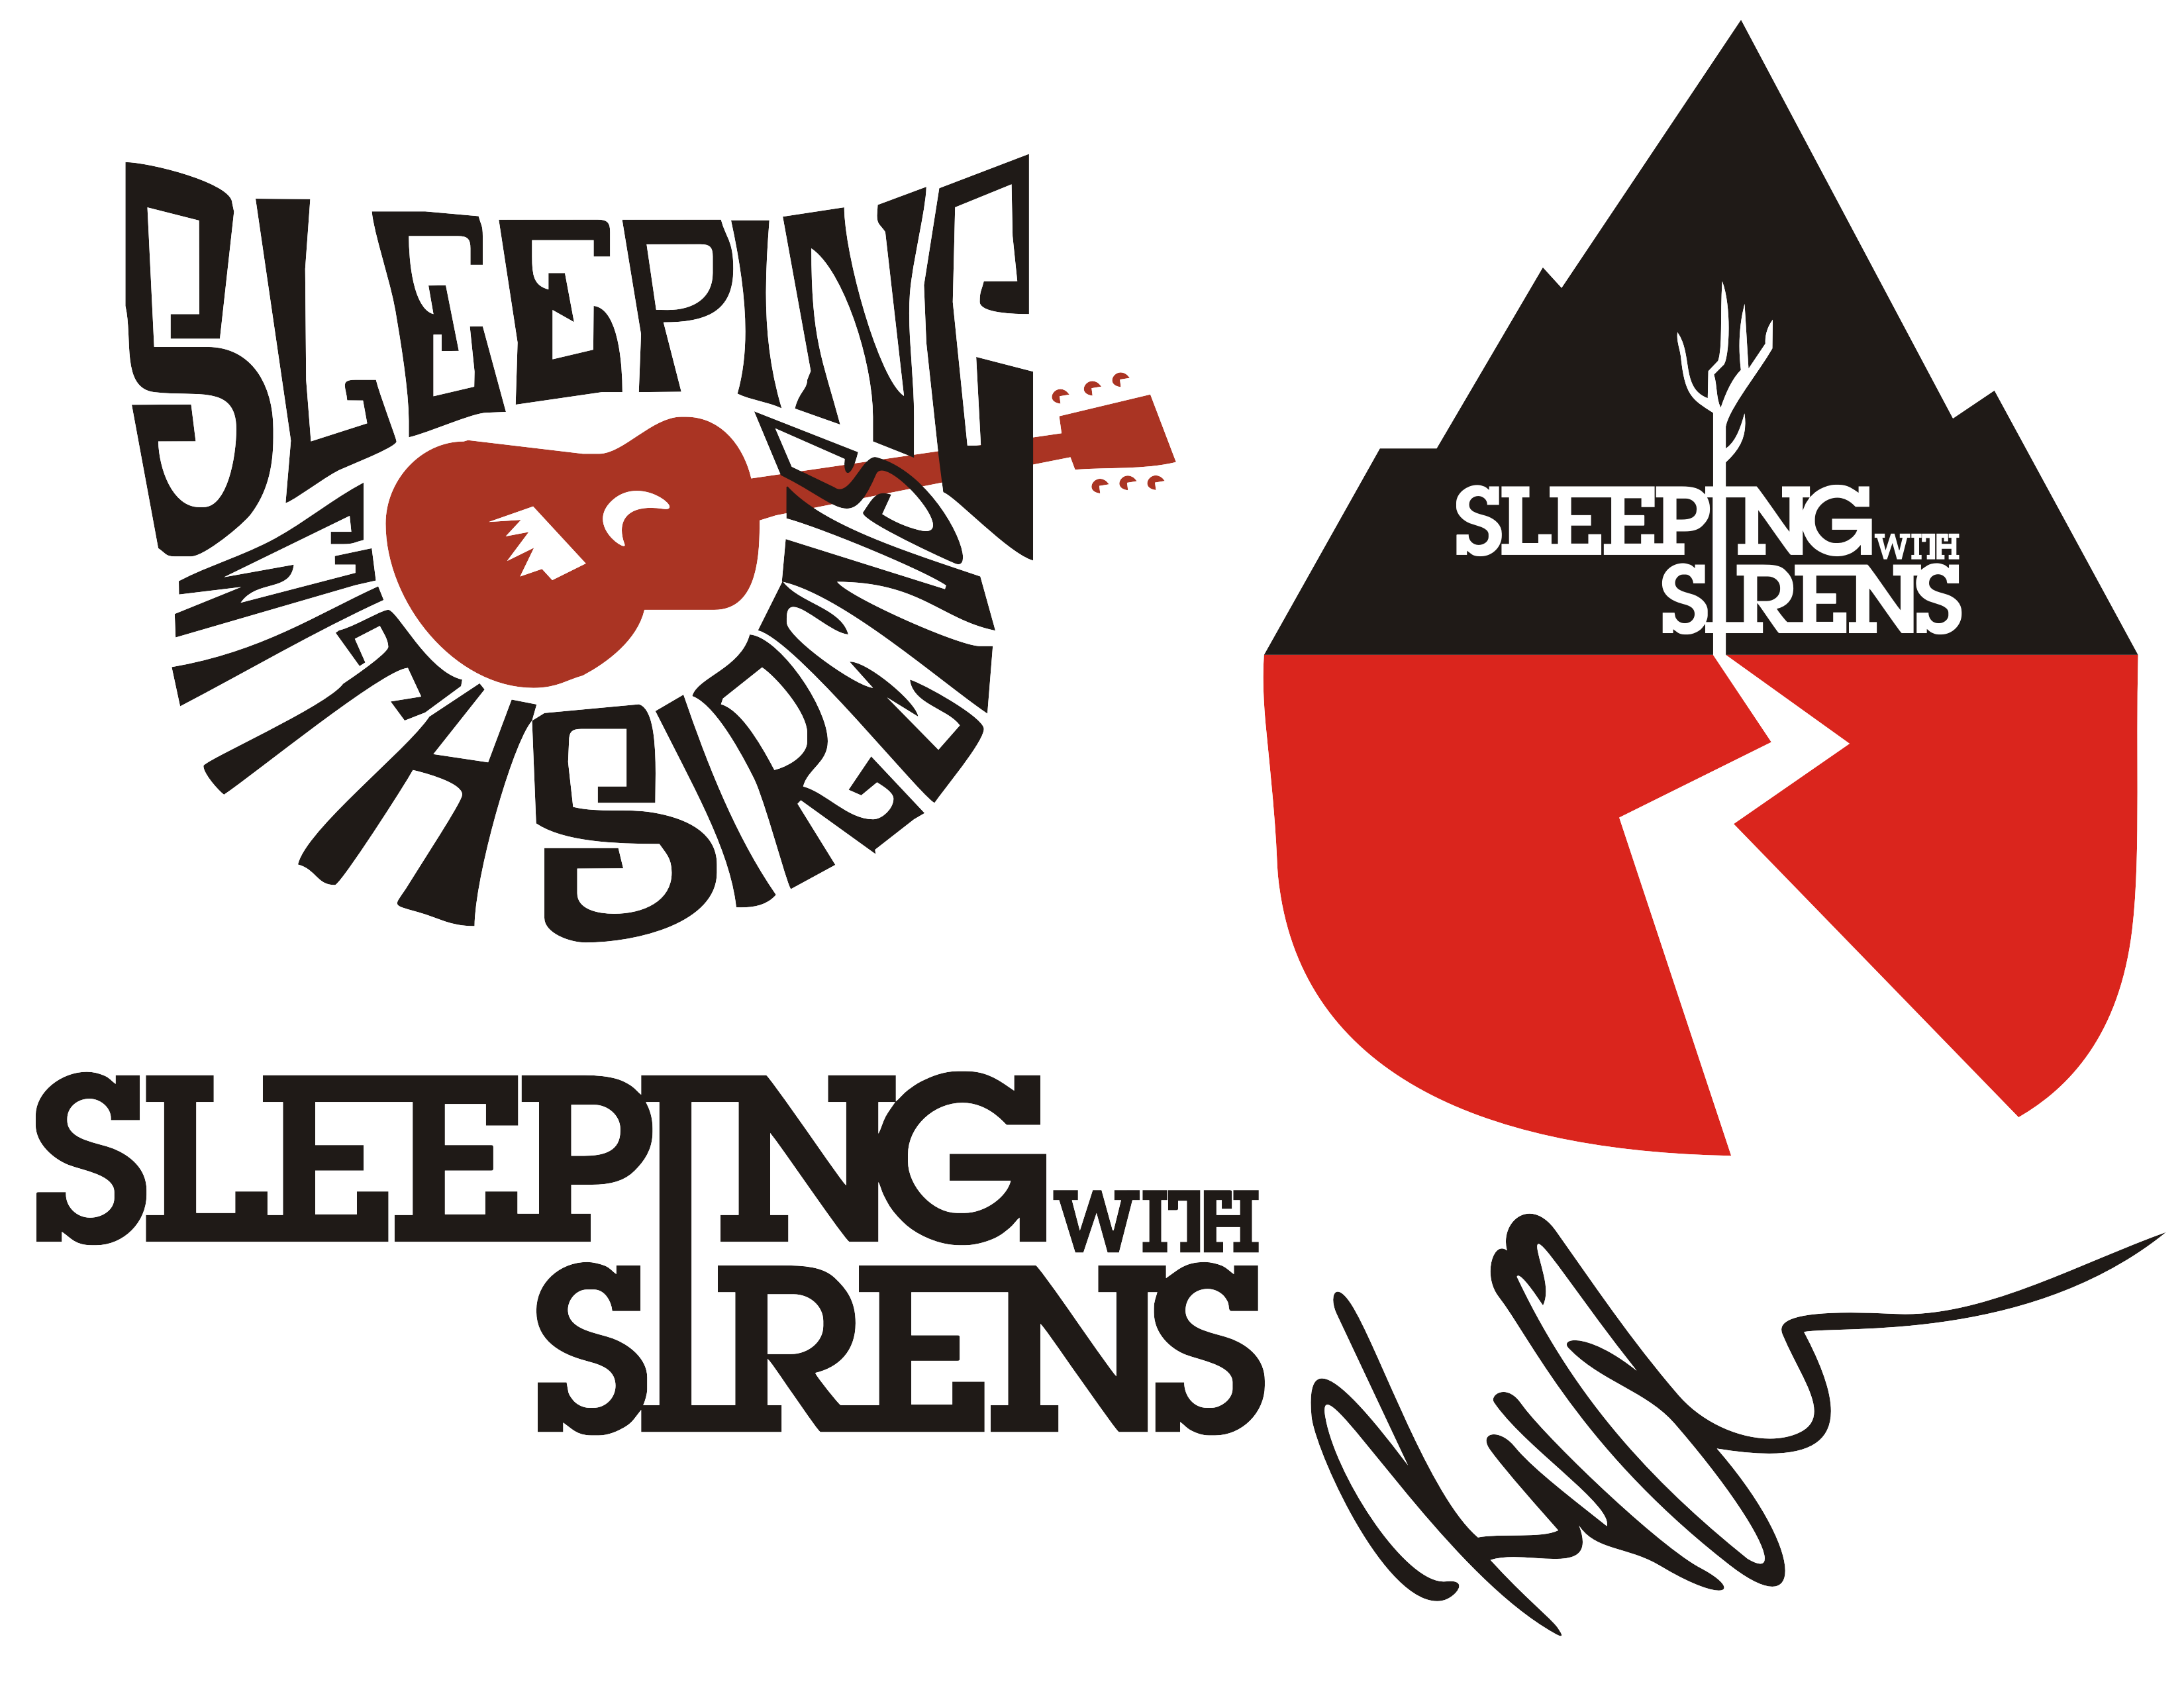 Sleeping With Sirens Drawings Tumblr